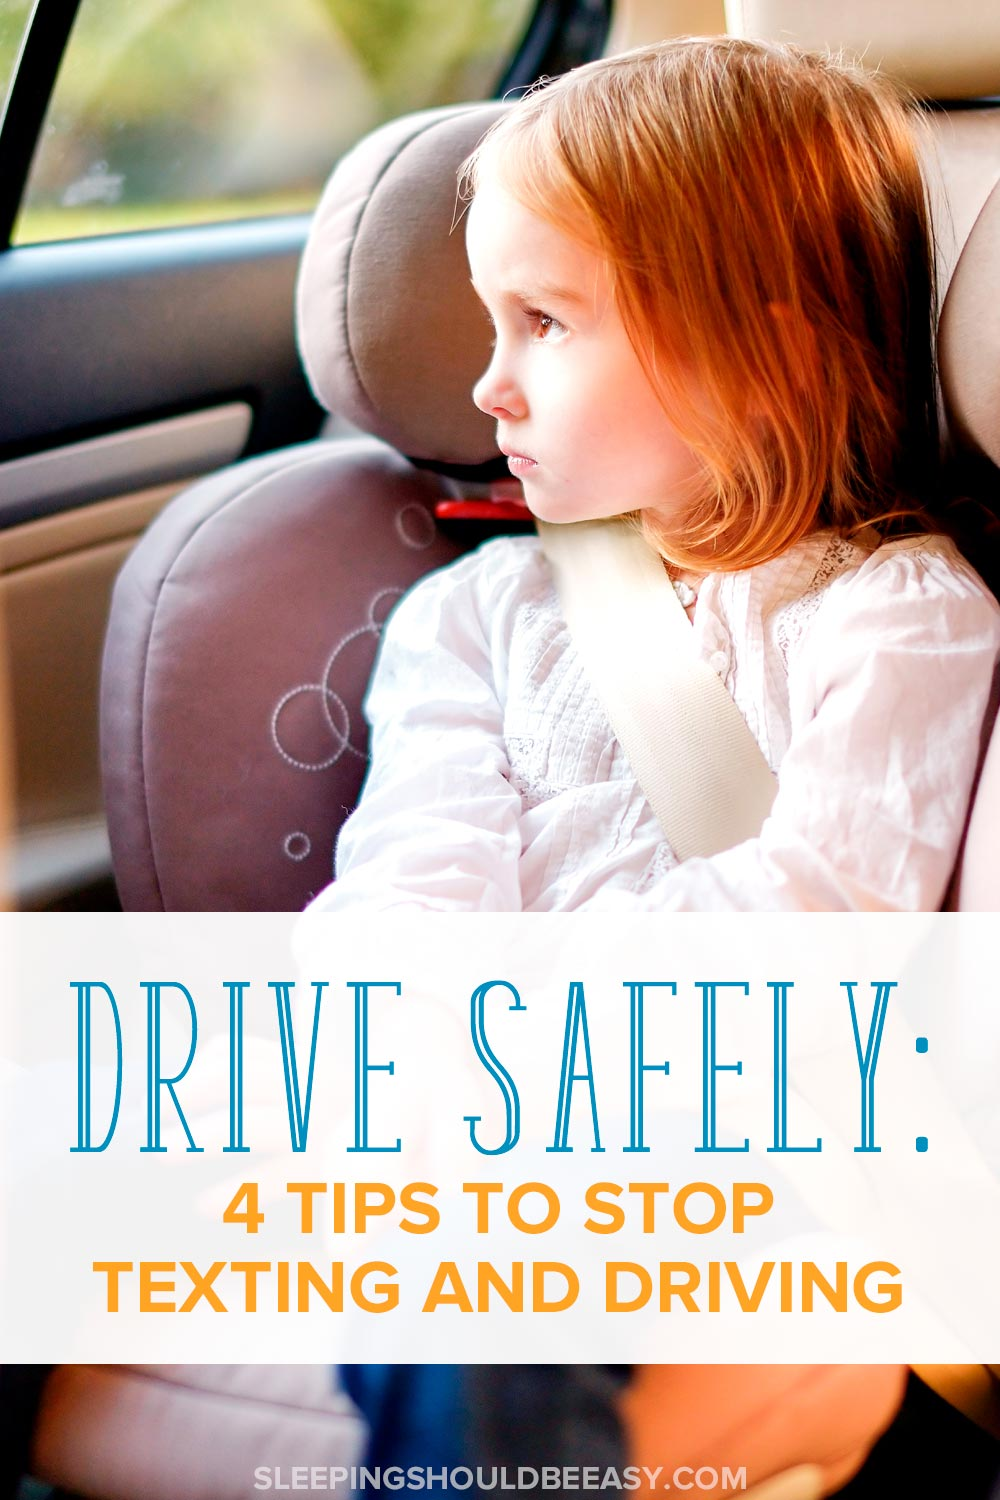 Do you drive while distracted? Learn why no texting while driving is important and 4 effective tips to help you drive safely.